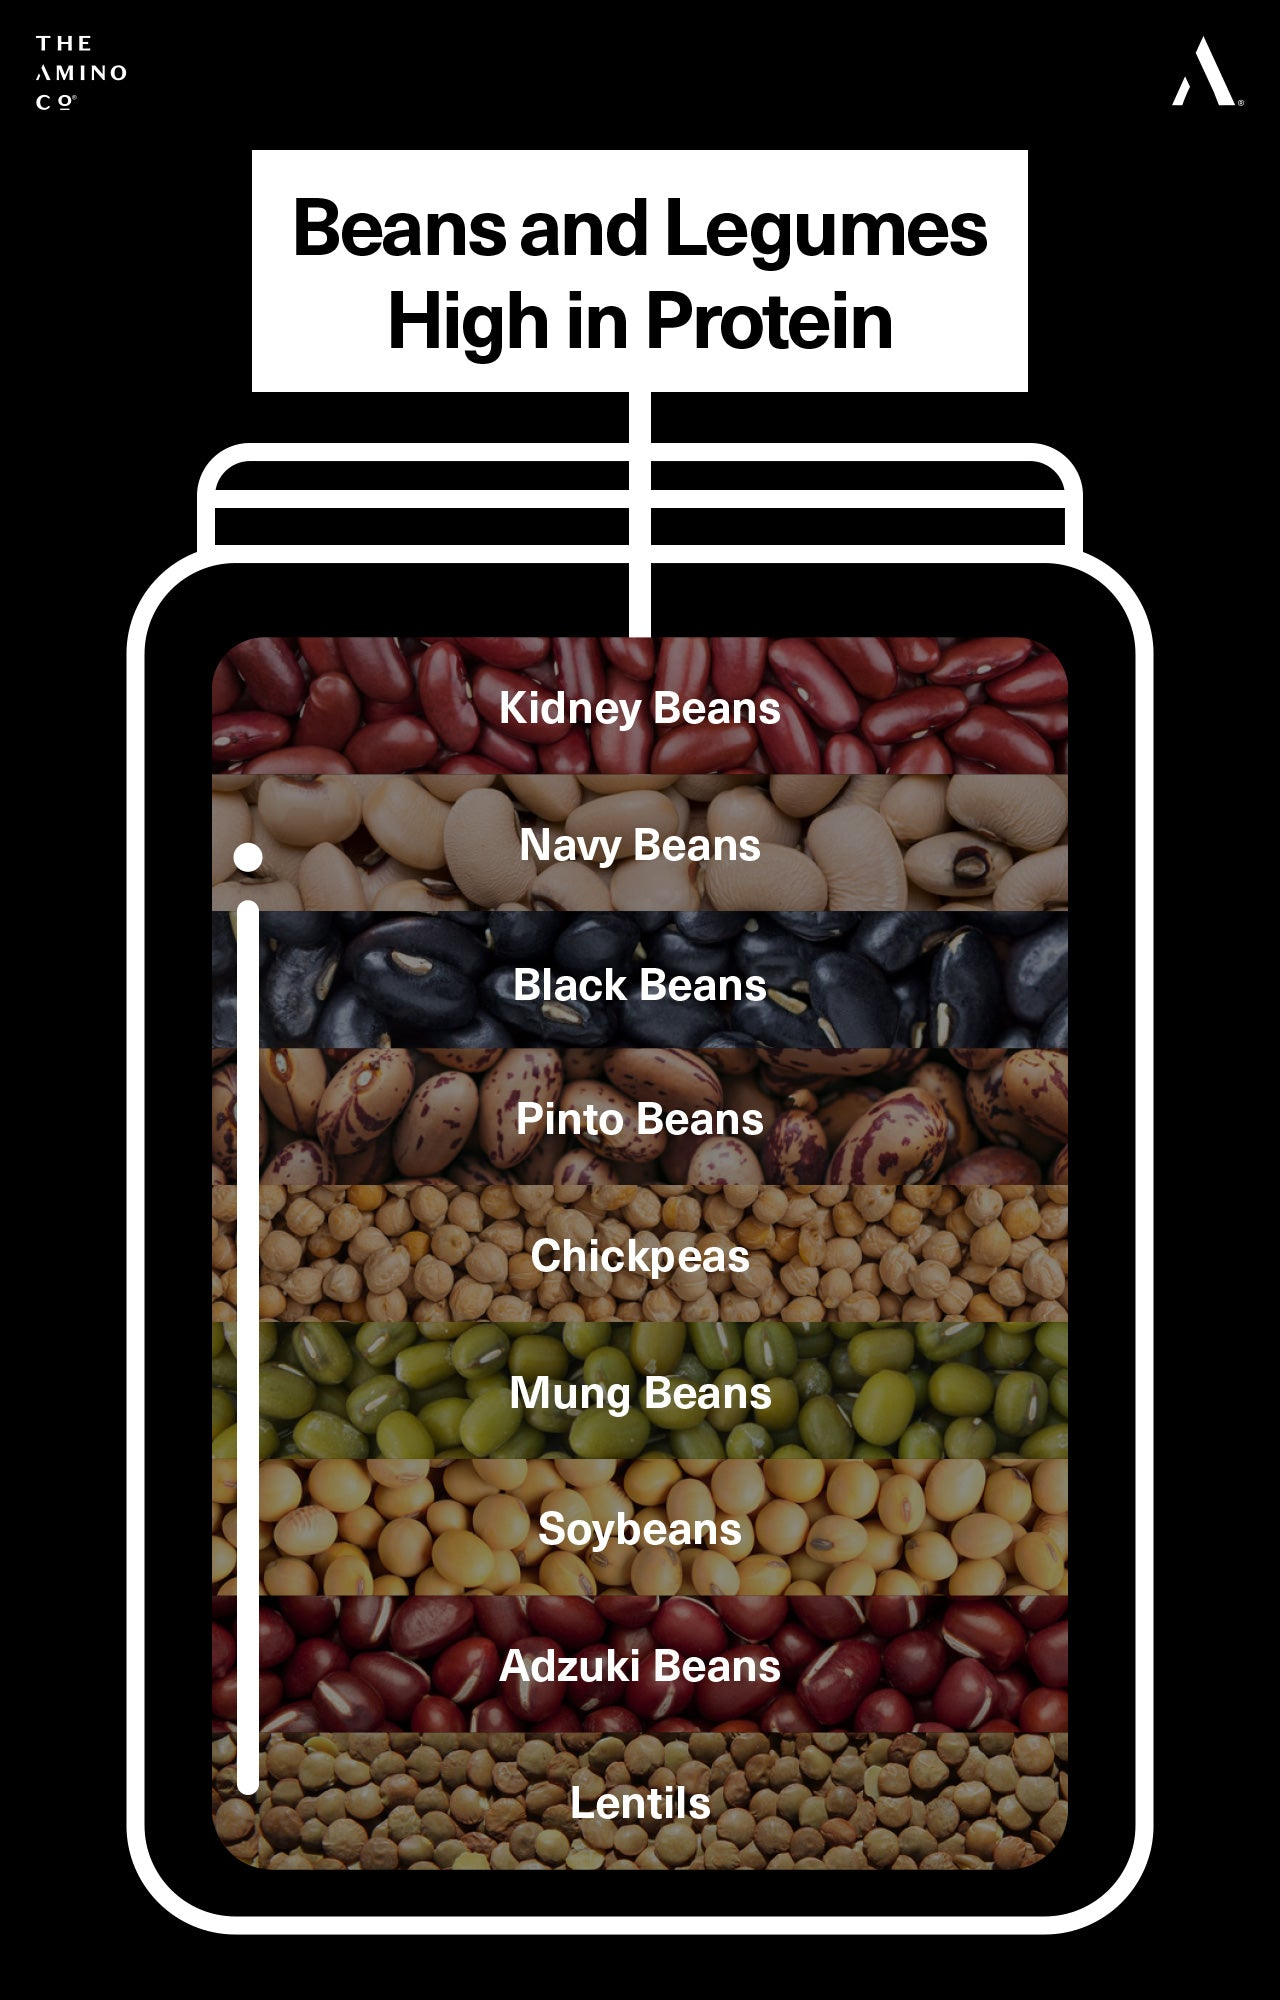 Beans and Legumes High in Protein